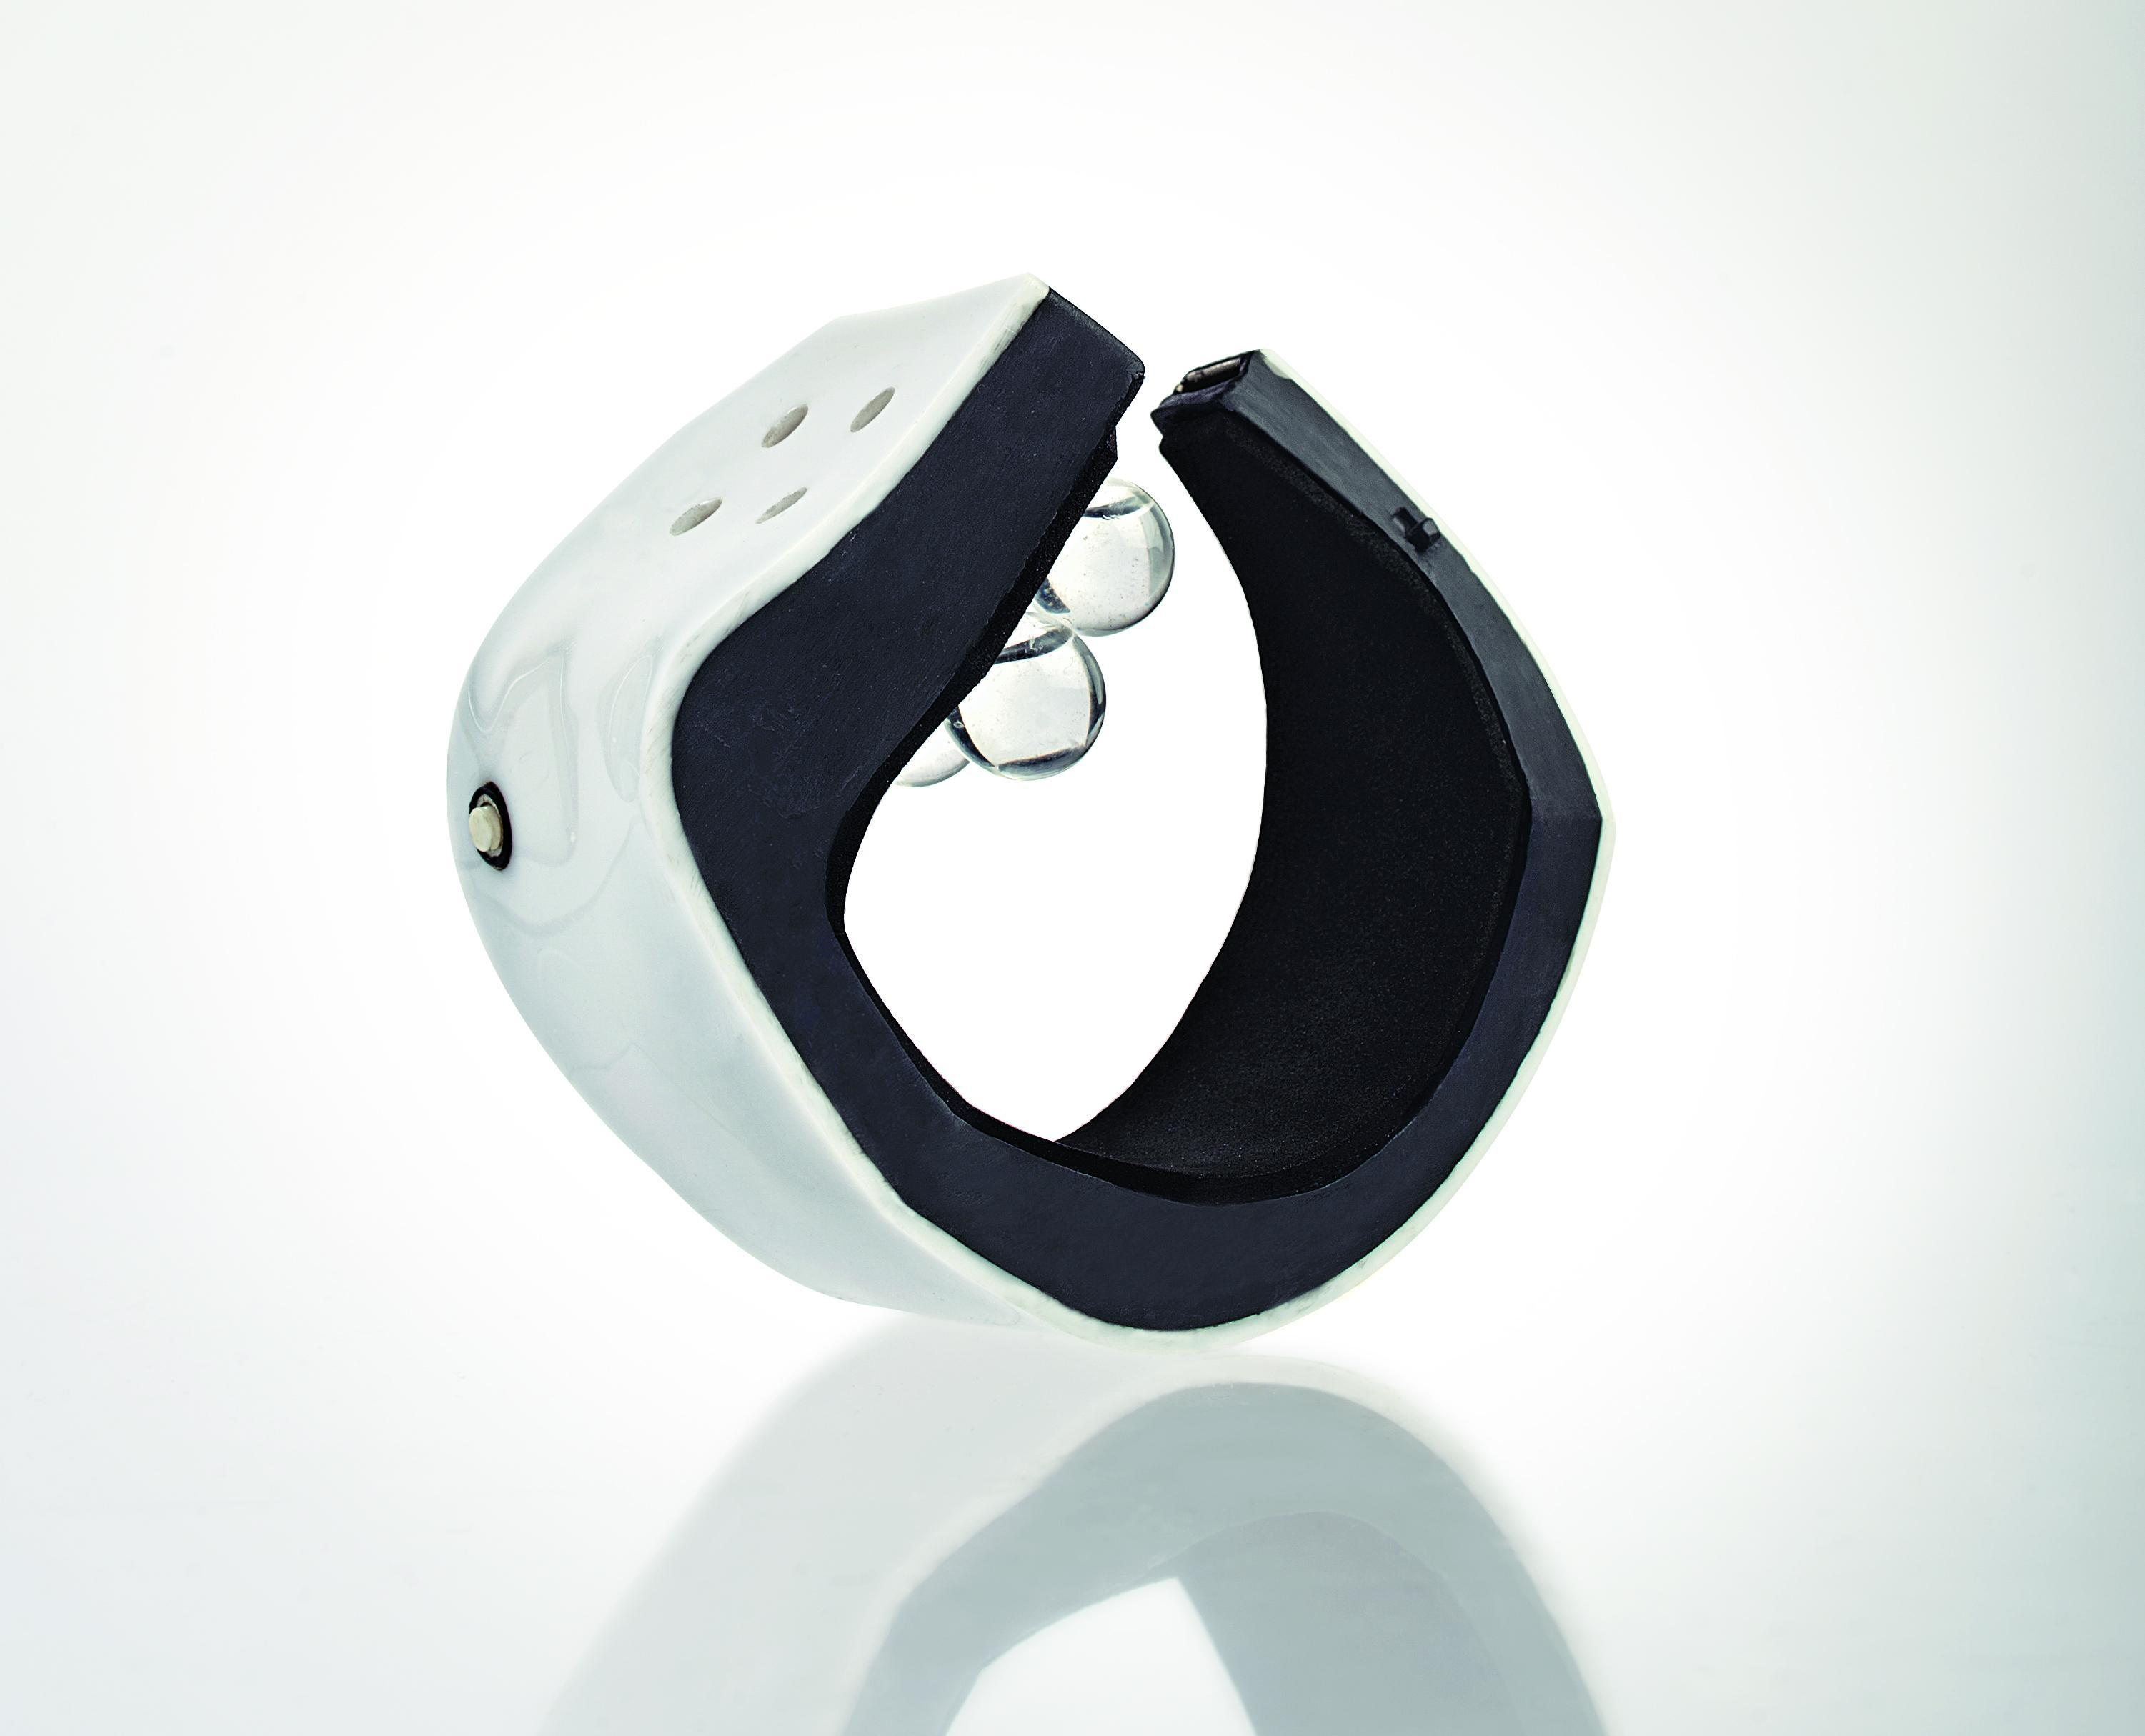 Smartwatch Tells Time with Scent